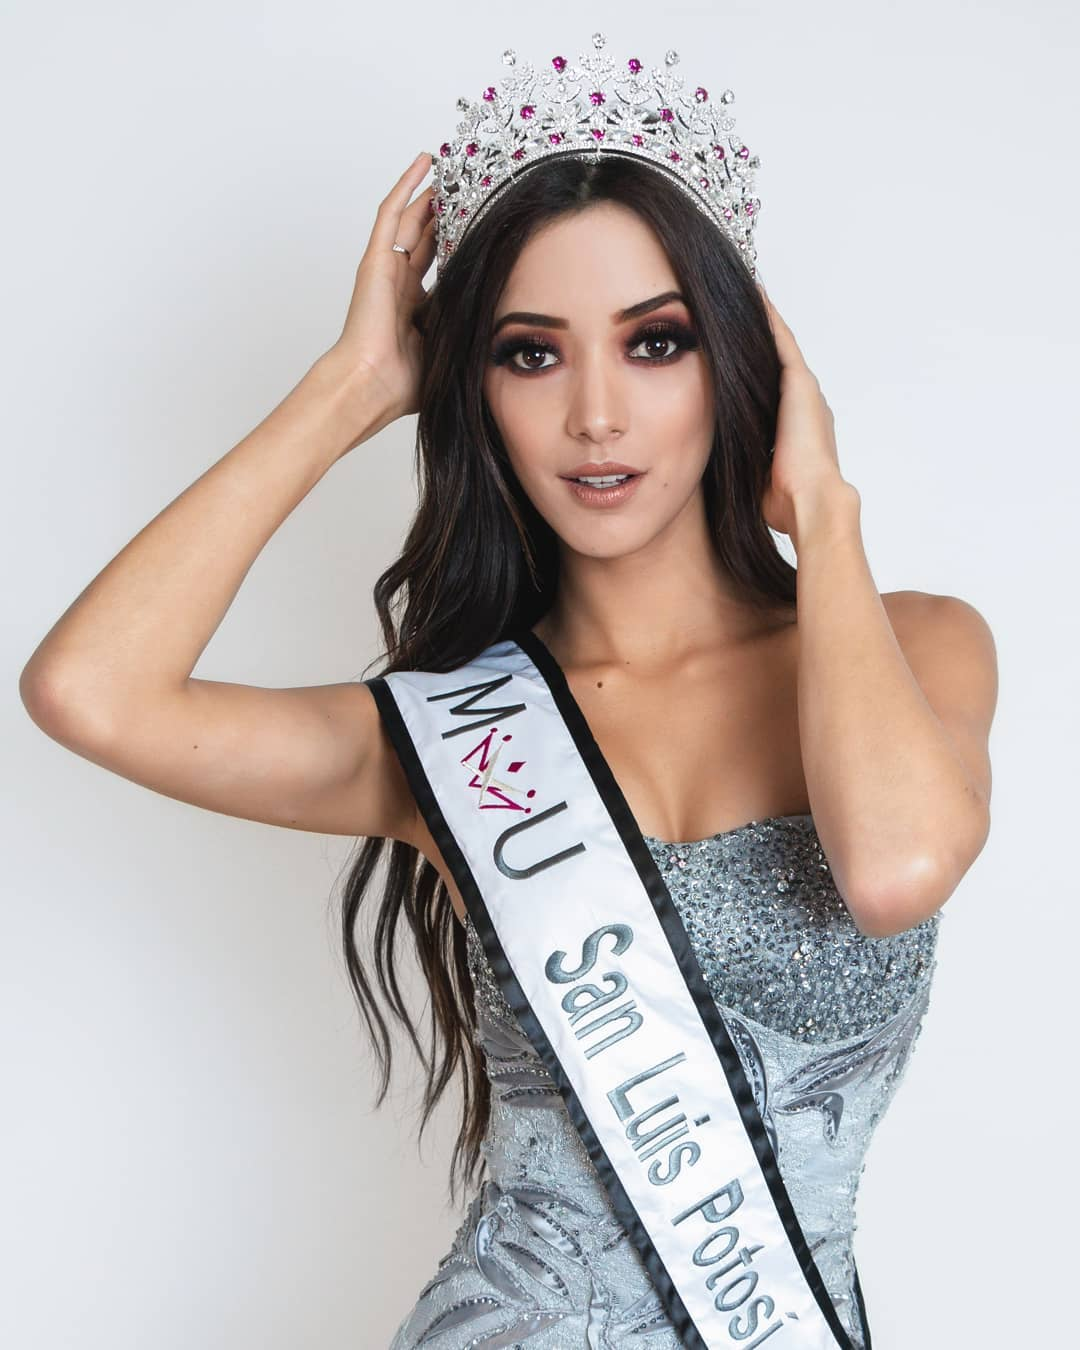 candidatas a mexicana universal 2019. final: 31 may (no confirmado 100%). - Página 2 Wyuabcst